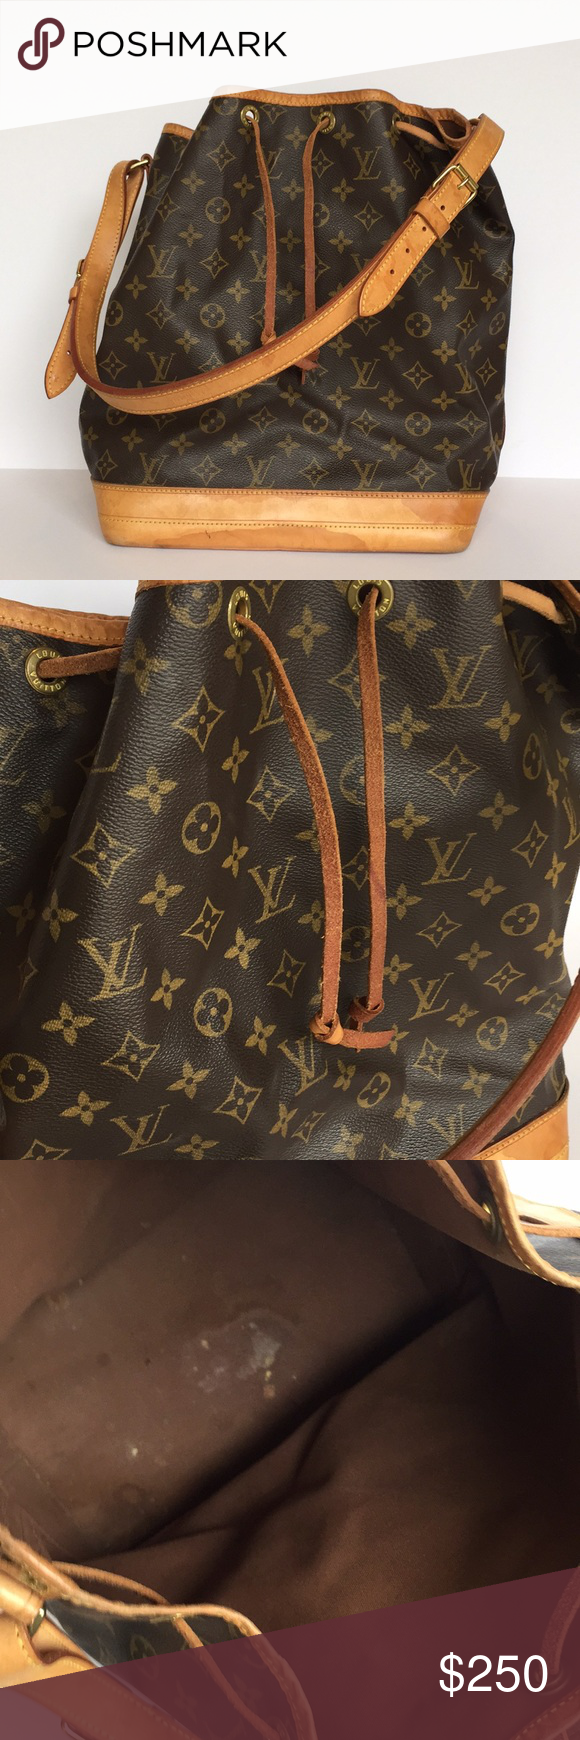 22b1726a360 Vintage Louis Vuitton NOE Bag Authentic Vintage Louis Vuitton bucket bag.  In poor condition. Large stains on leather. Drawstring has seen better days.